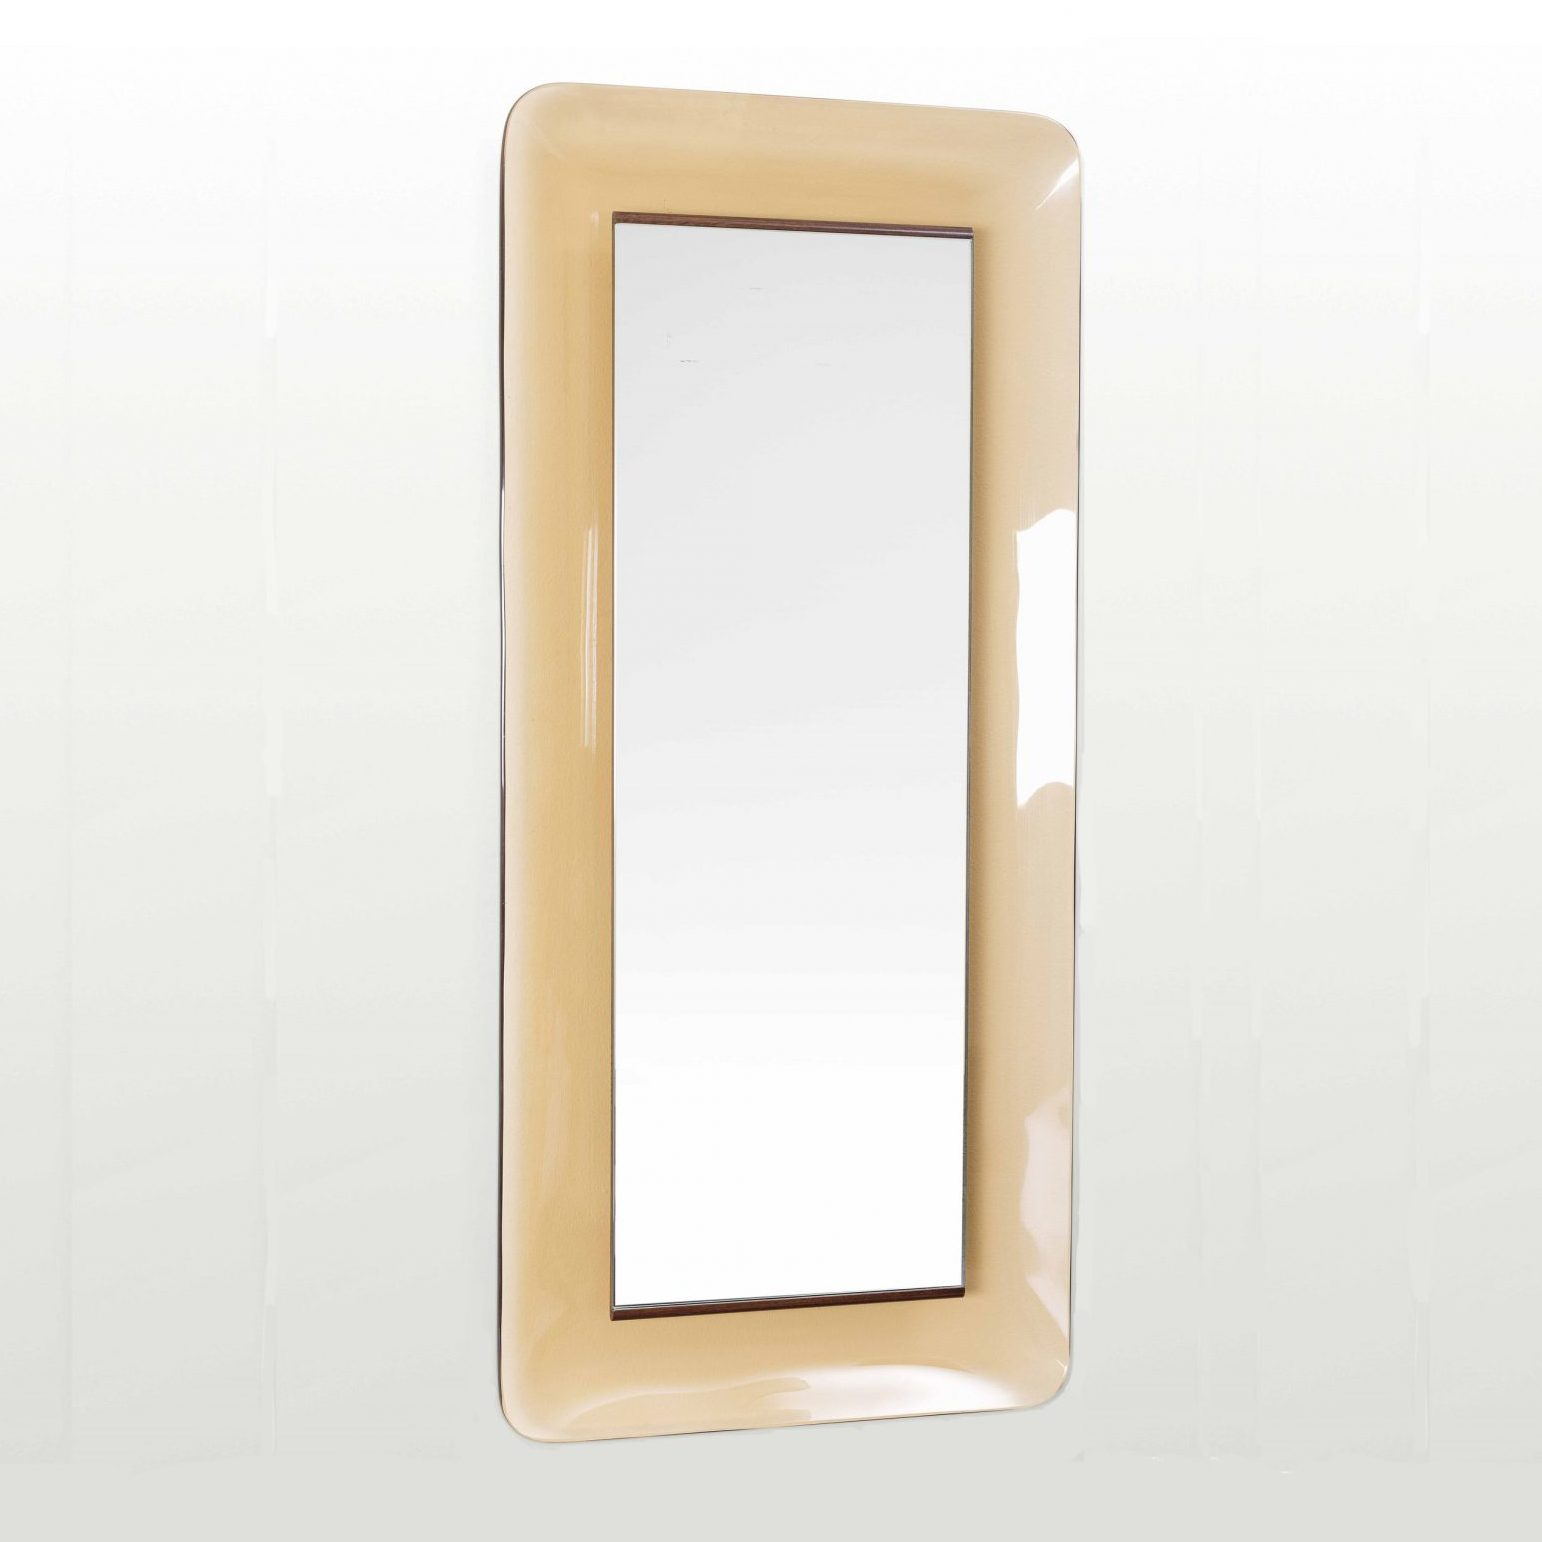 Max Ingrand |                                  Beige mirror model 2273 by Fontana Arte